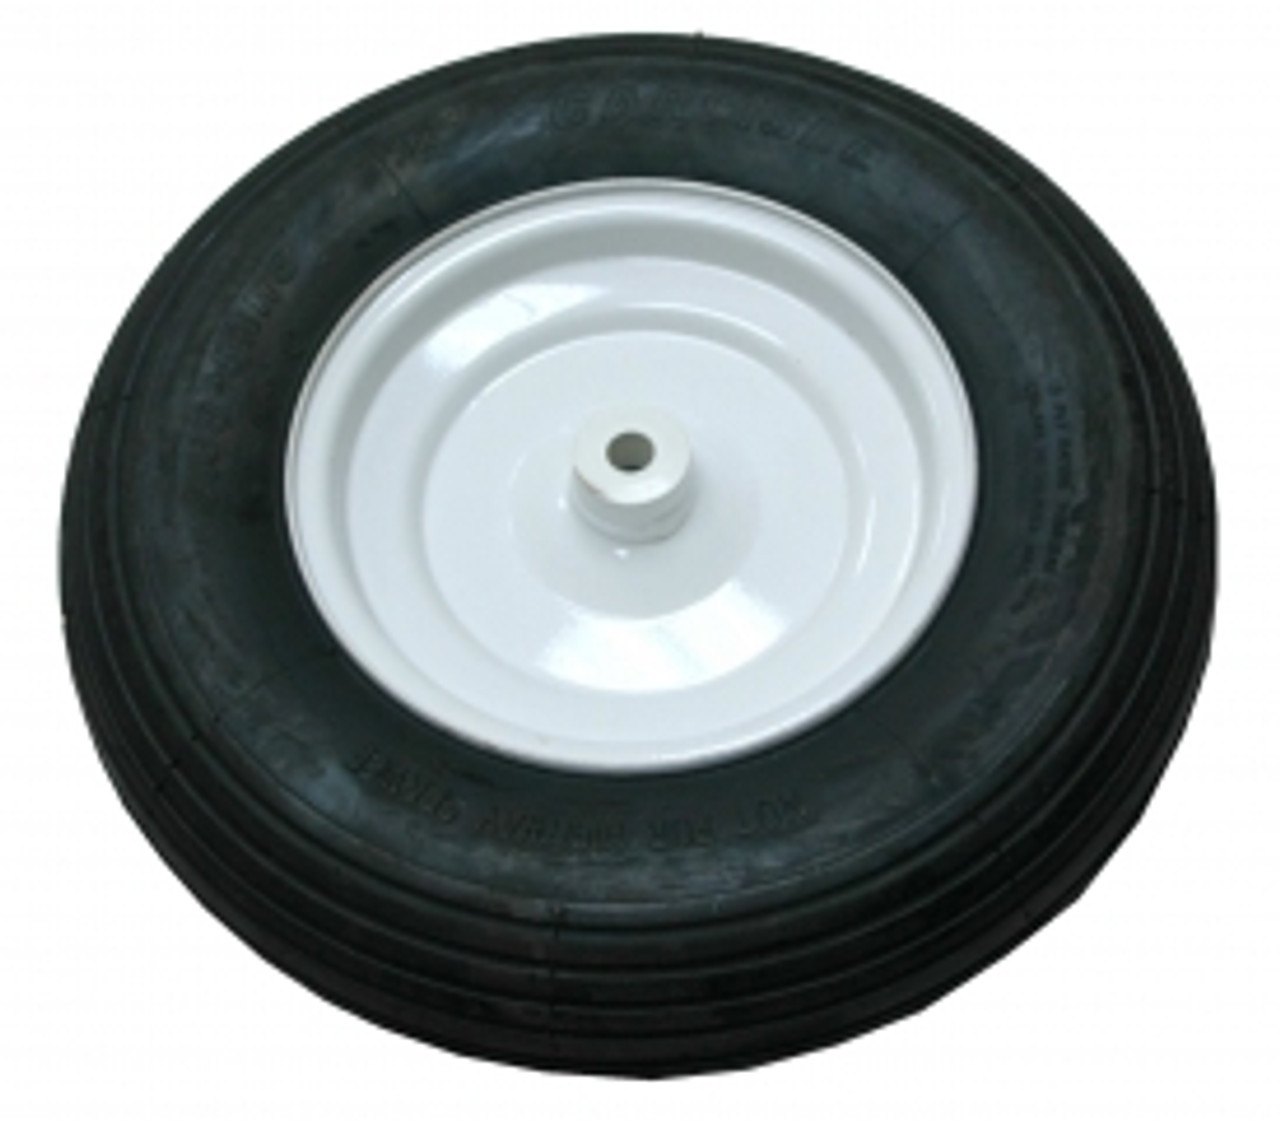 "Pneumatic wheel with knobby tread, 8"" x 2.5"", fits 564003 Low Wheel Cart"